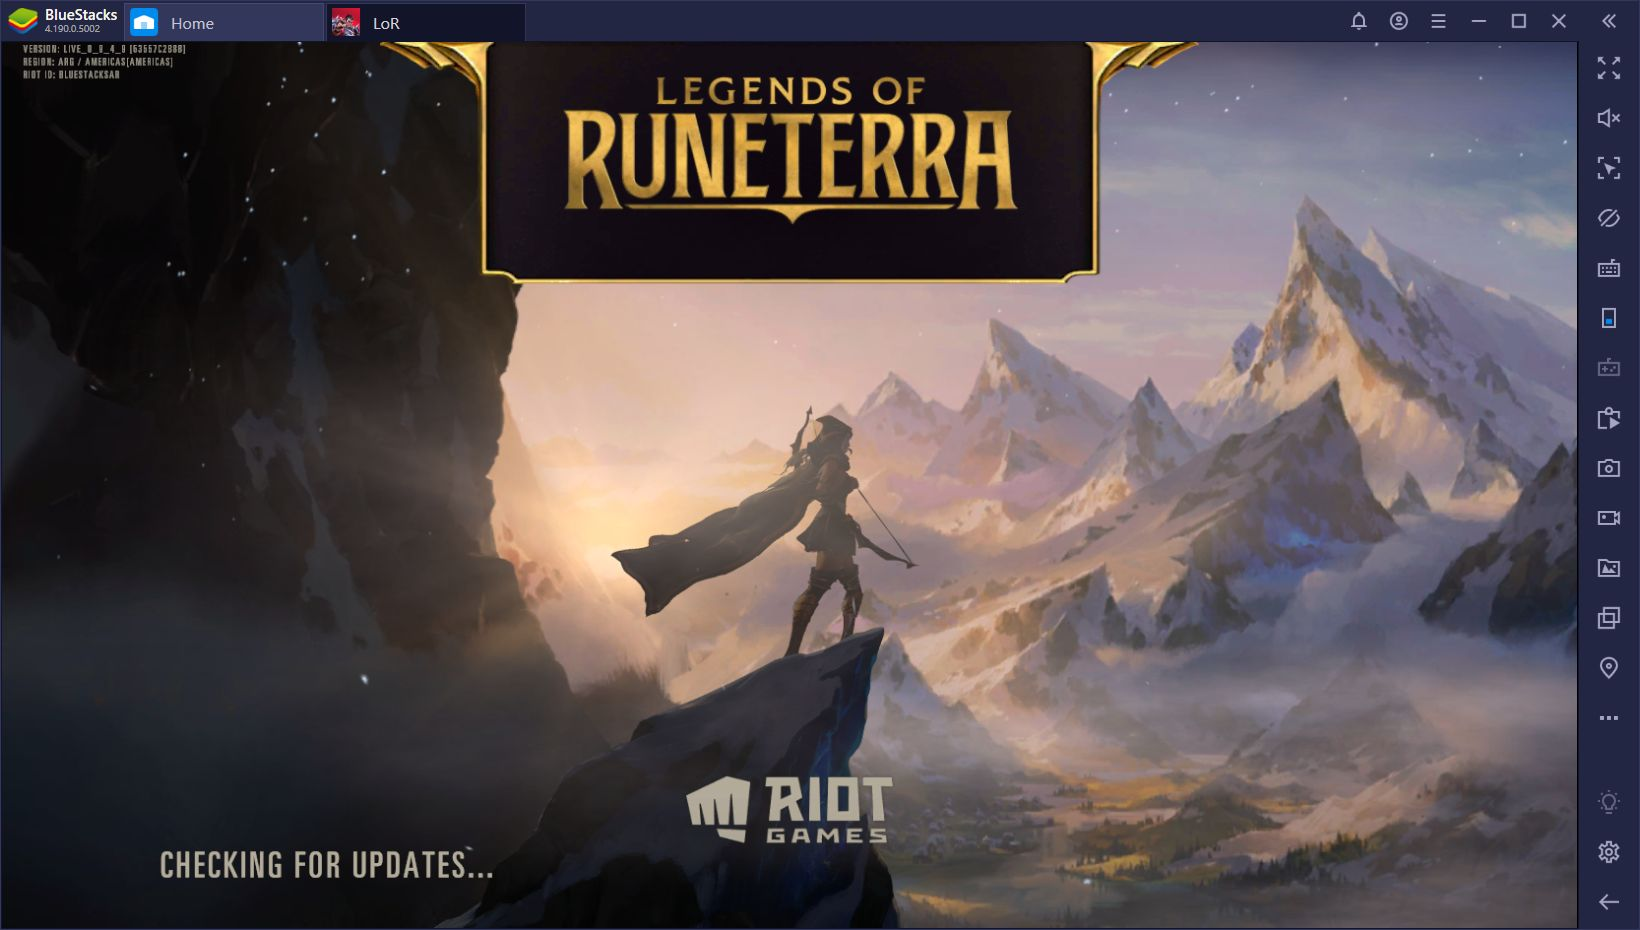 Legends of Runeterra on PC - An Introduction to the Different Regions